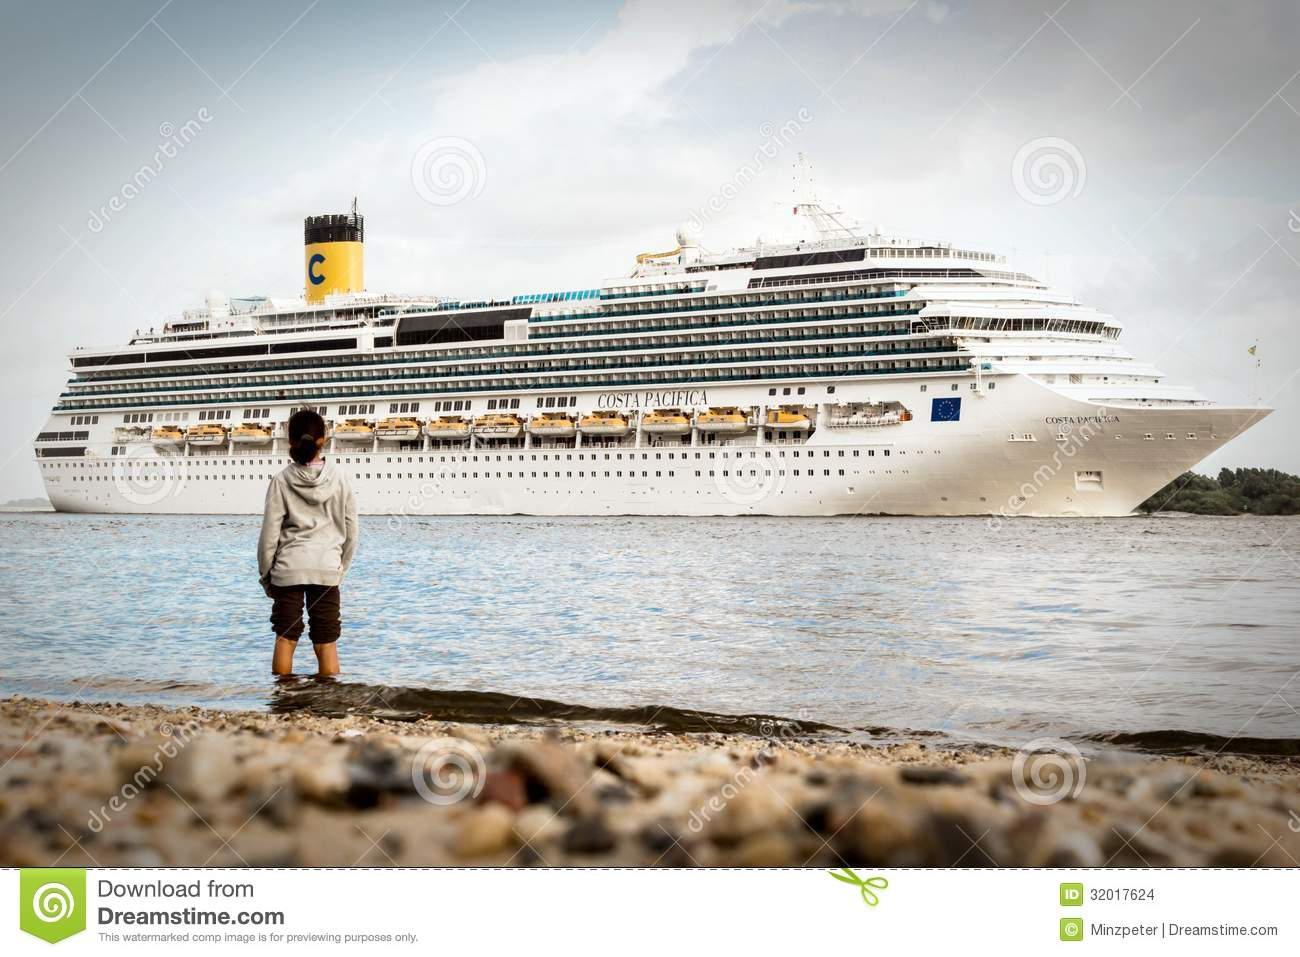 Cruise Ship Quotes And Sayings Quotesgram: Funny Quotes About Cruise Ships. QuotesGram